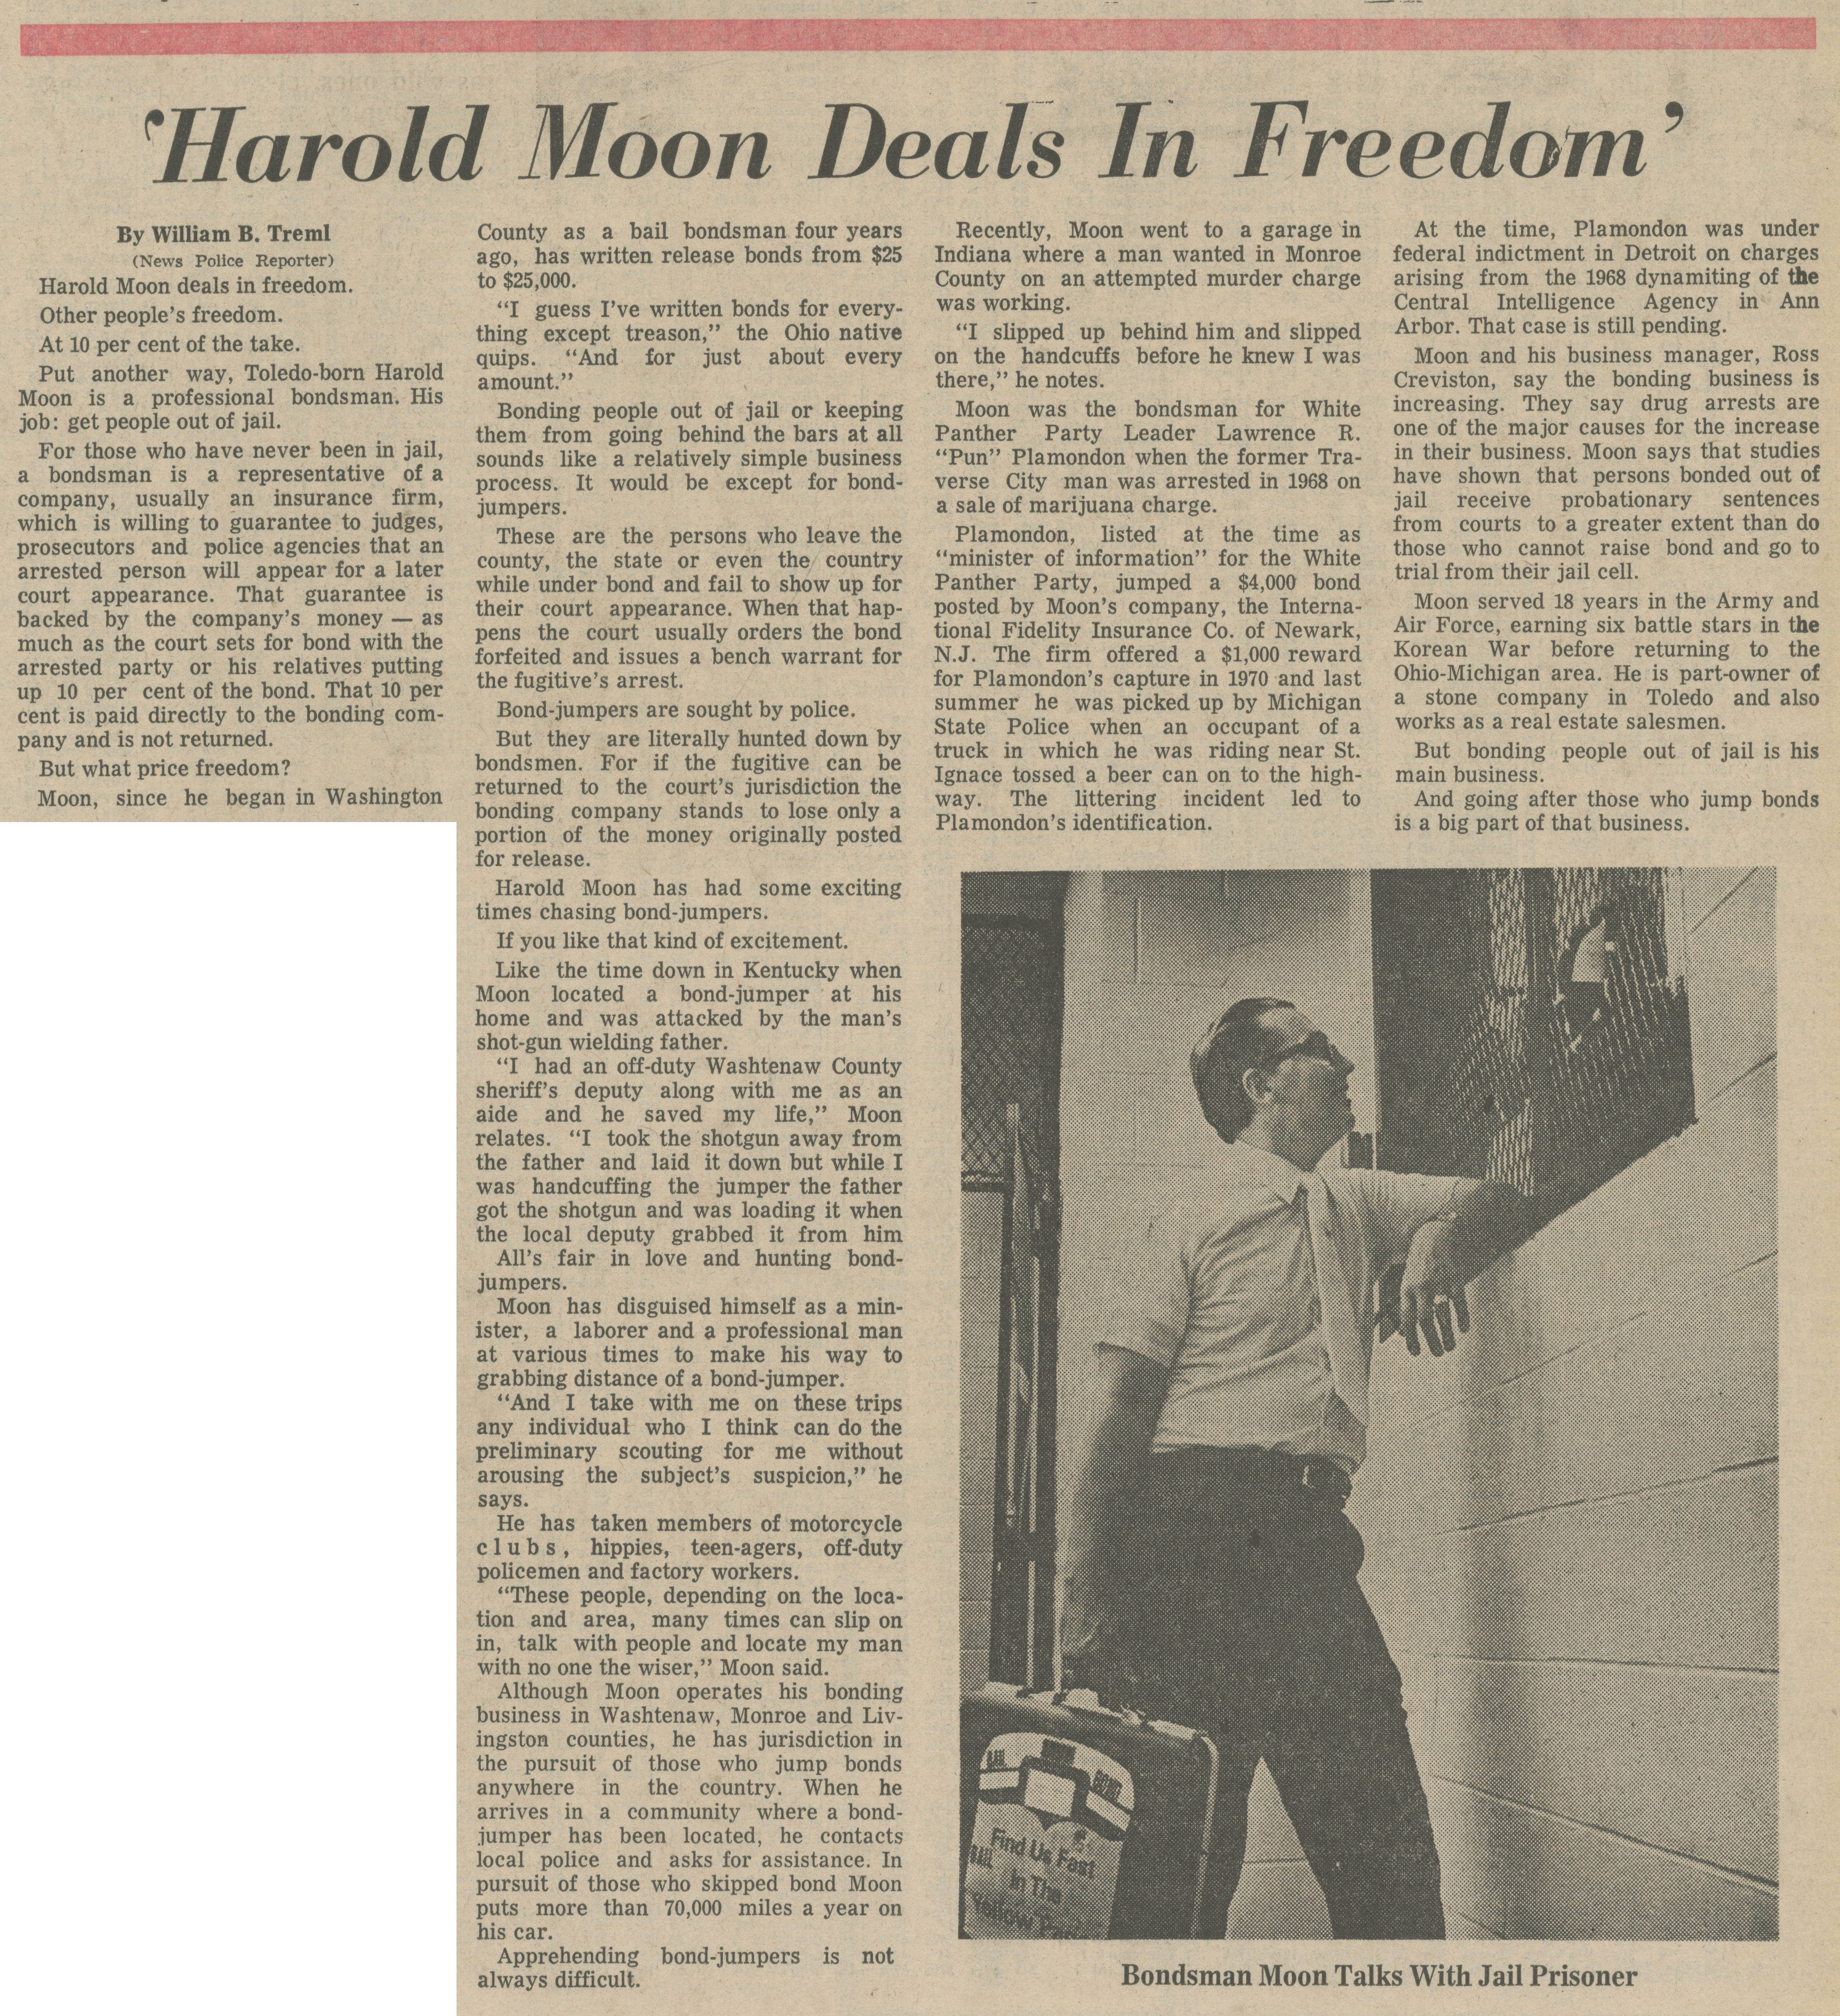 'Harold Moon Deals in Freedom' image